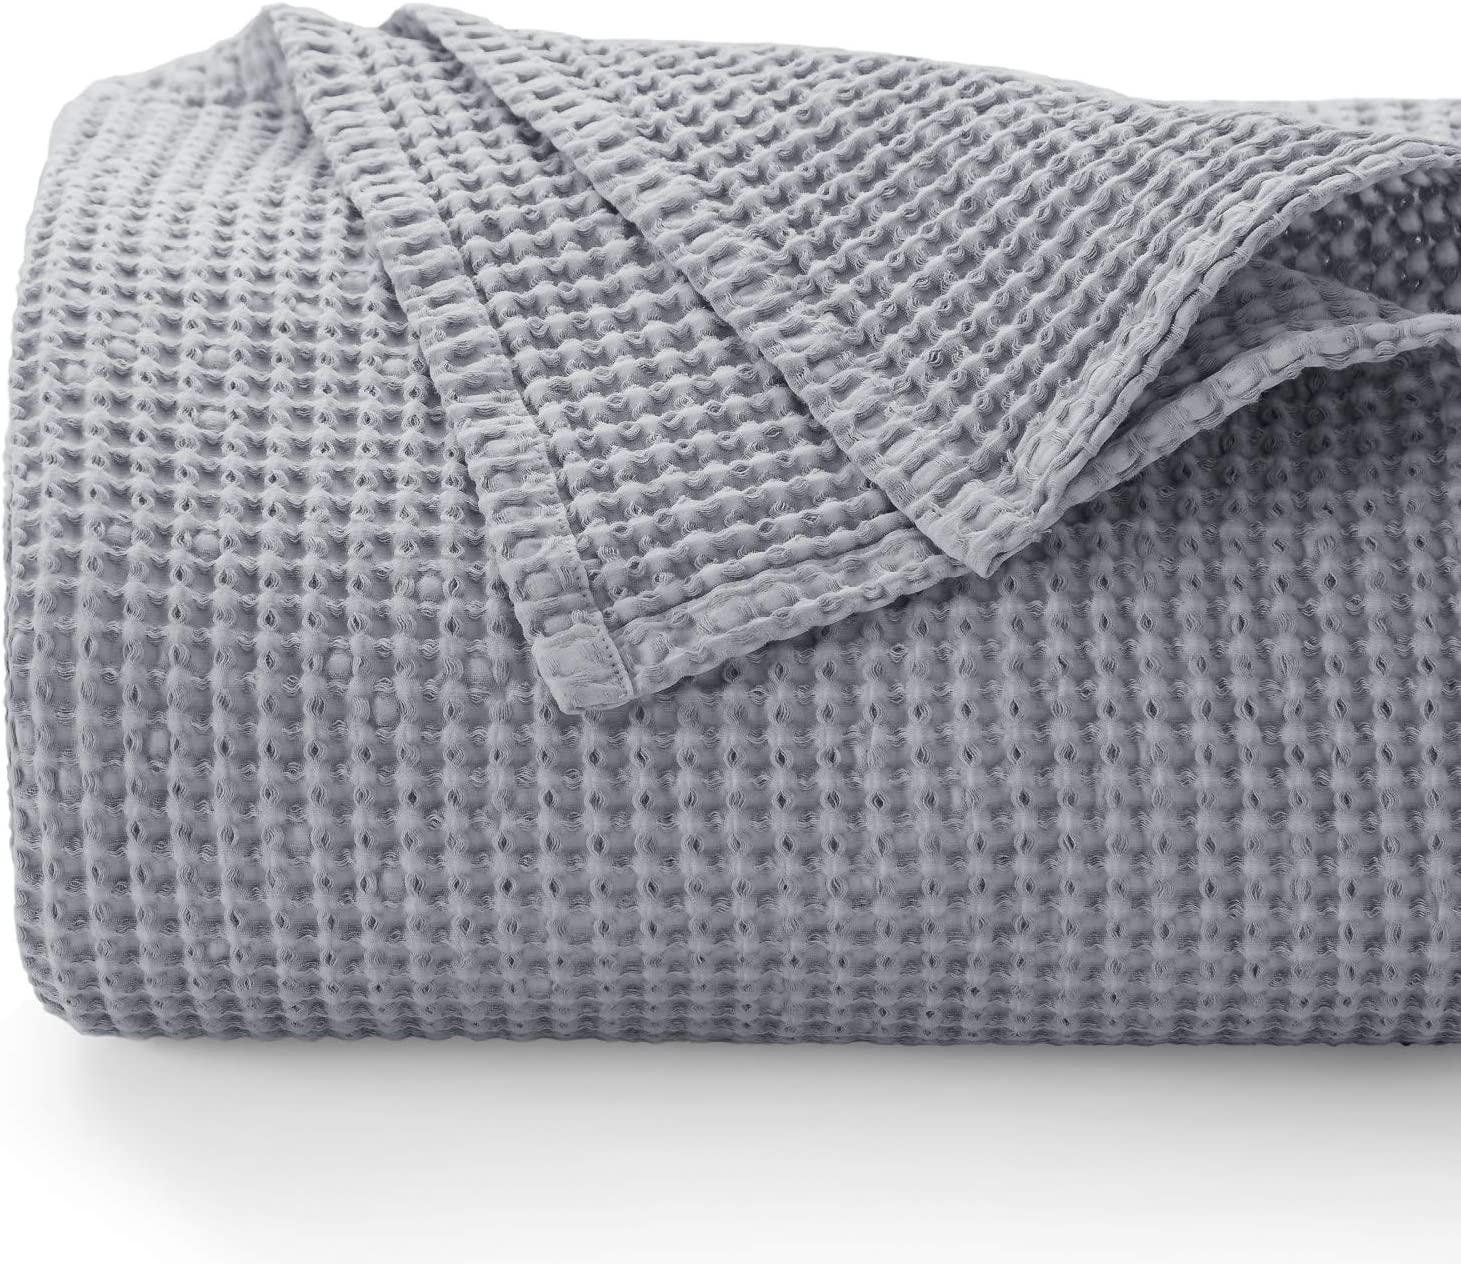 Bedsure 100% Cotton Blanket - Blanket with Waffle Pattern for Home Decoration - Perfect for Layering Any Bed for All-Season - Queen Size (90 x 90 inches), Grey